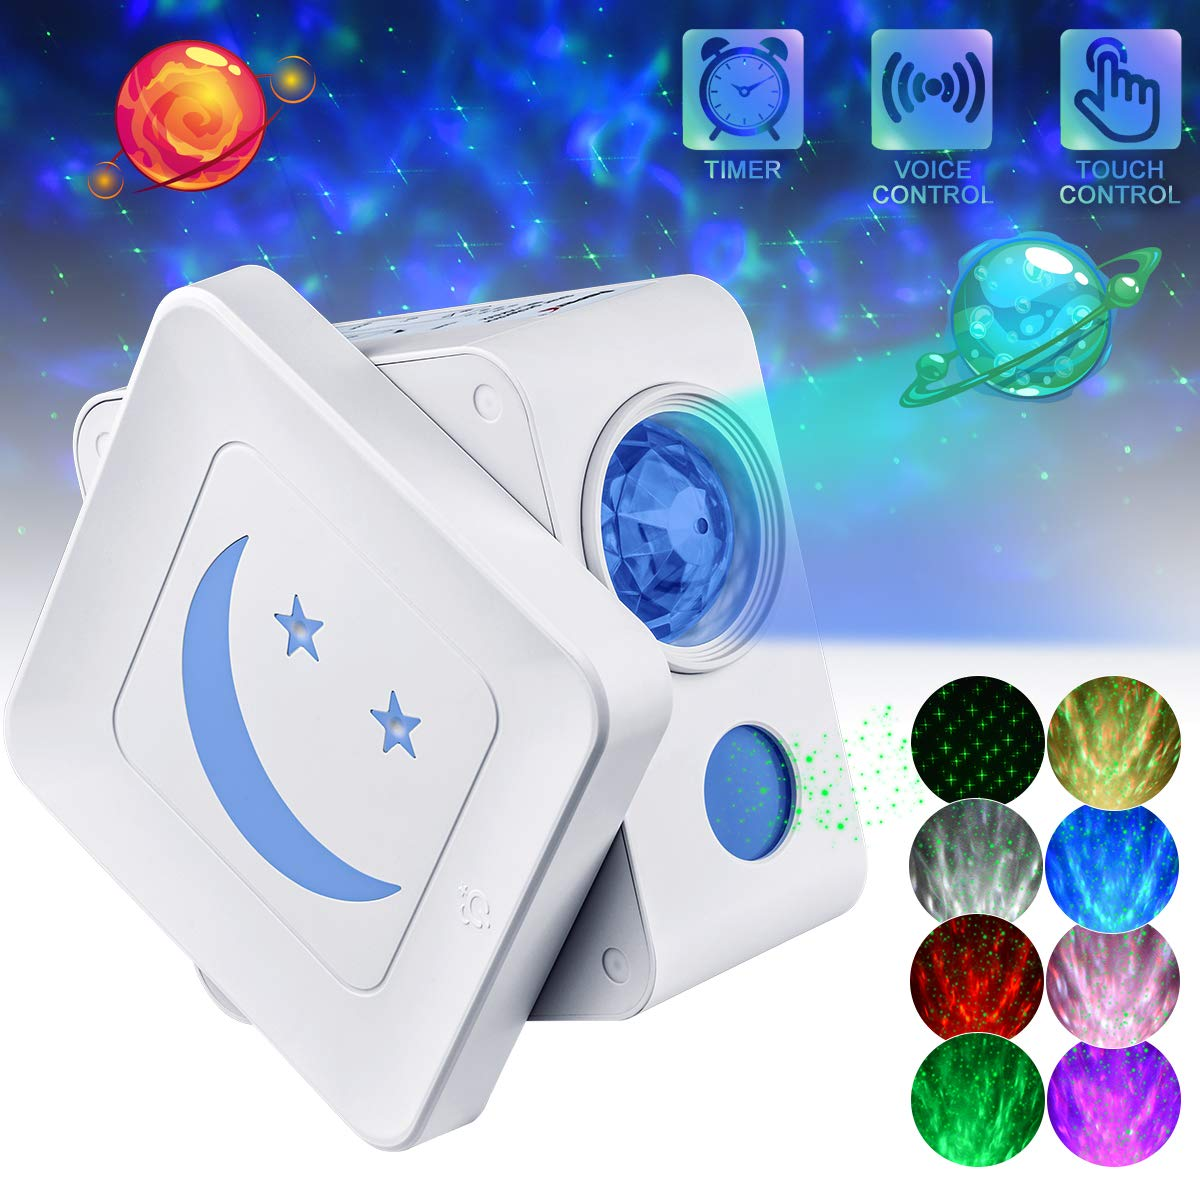 LED Starlight Projector, Night Light Projector with Adjustable Projection Angle